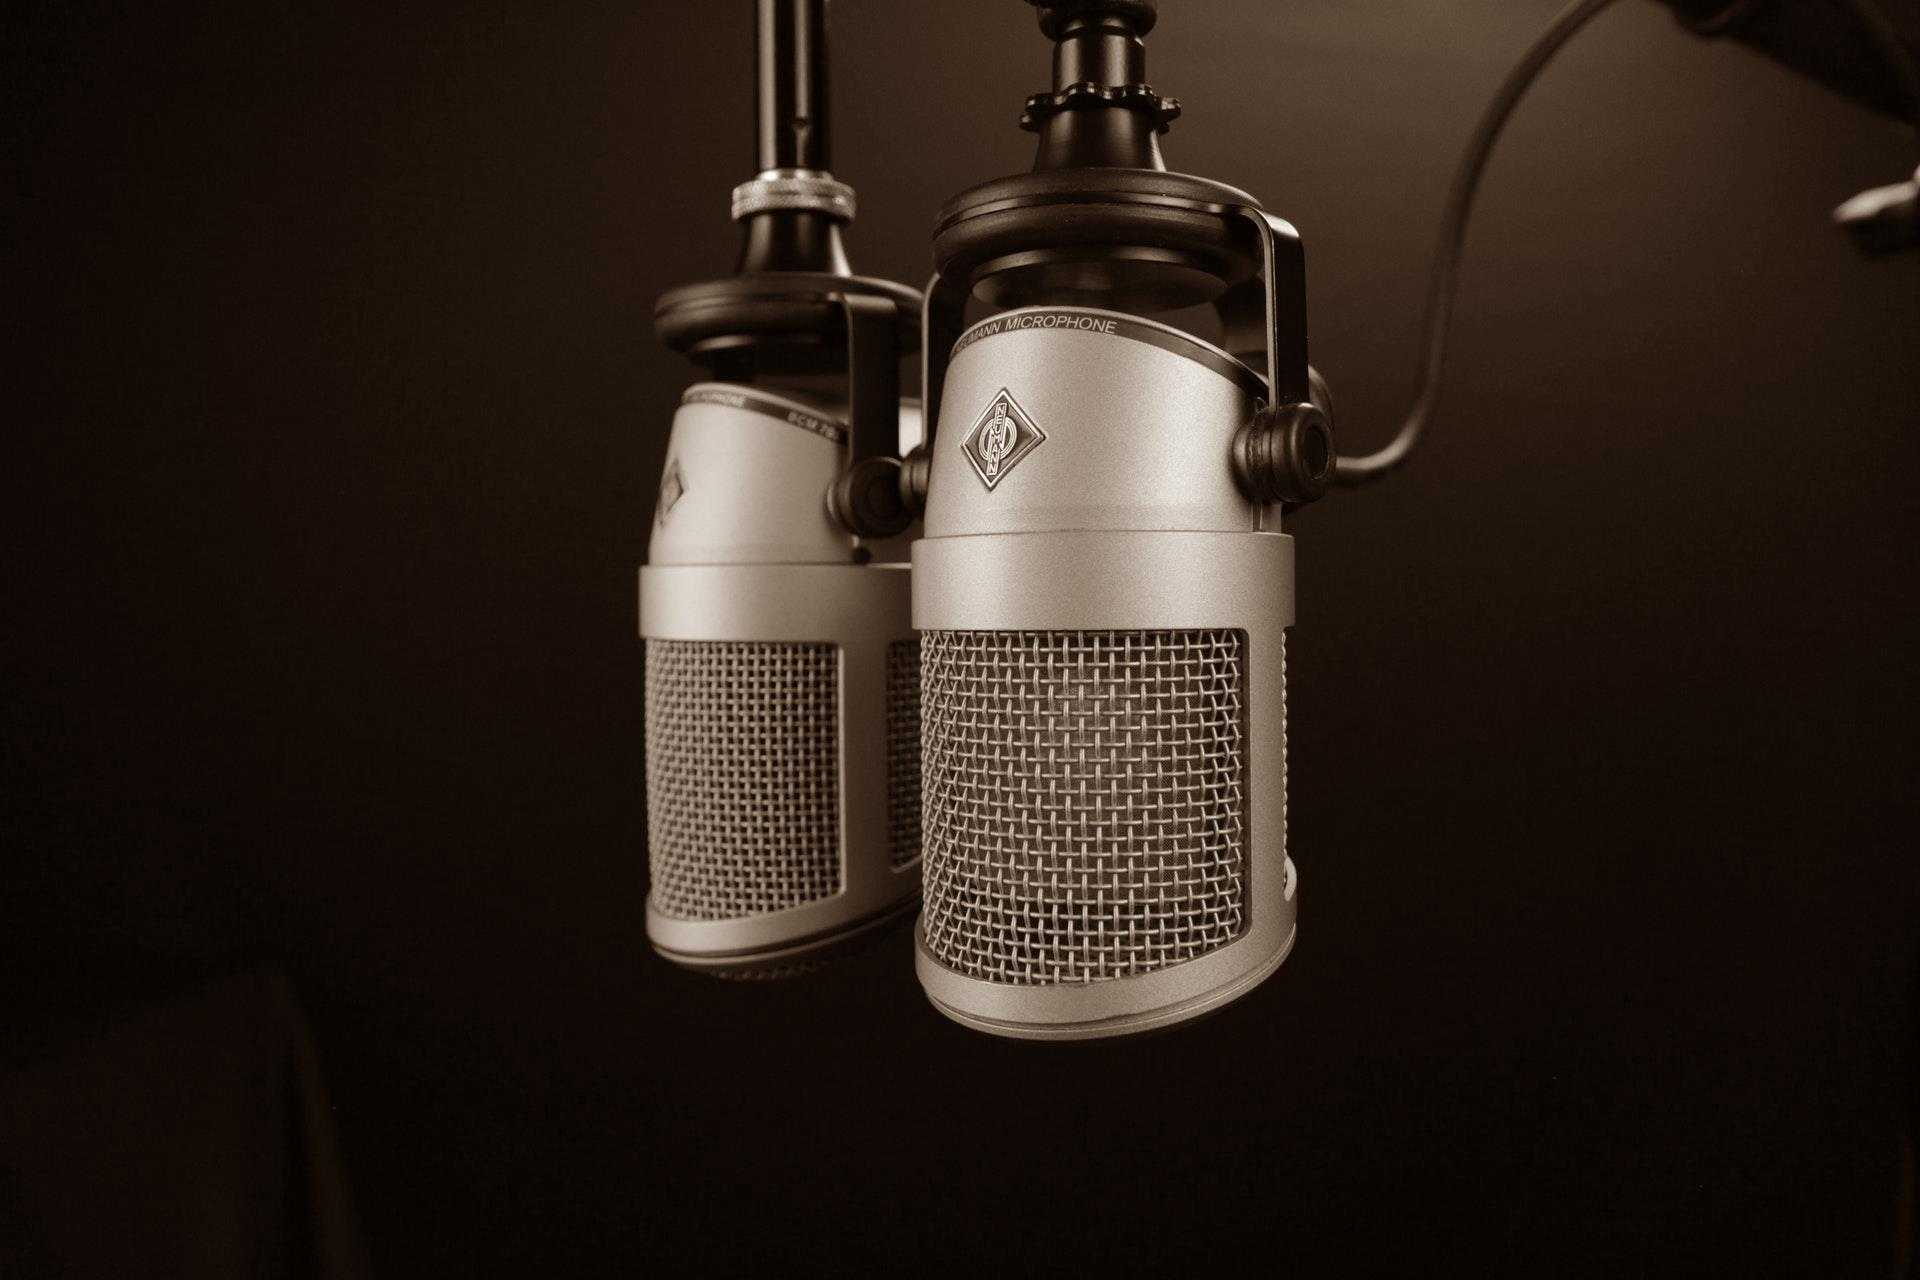 The 8 Essential Skills You Need to Be An Awesome Broadcaster